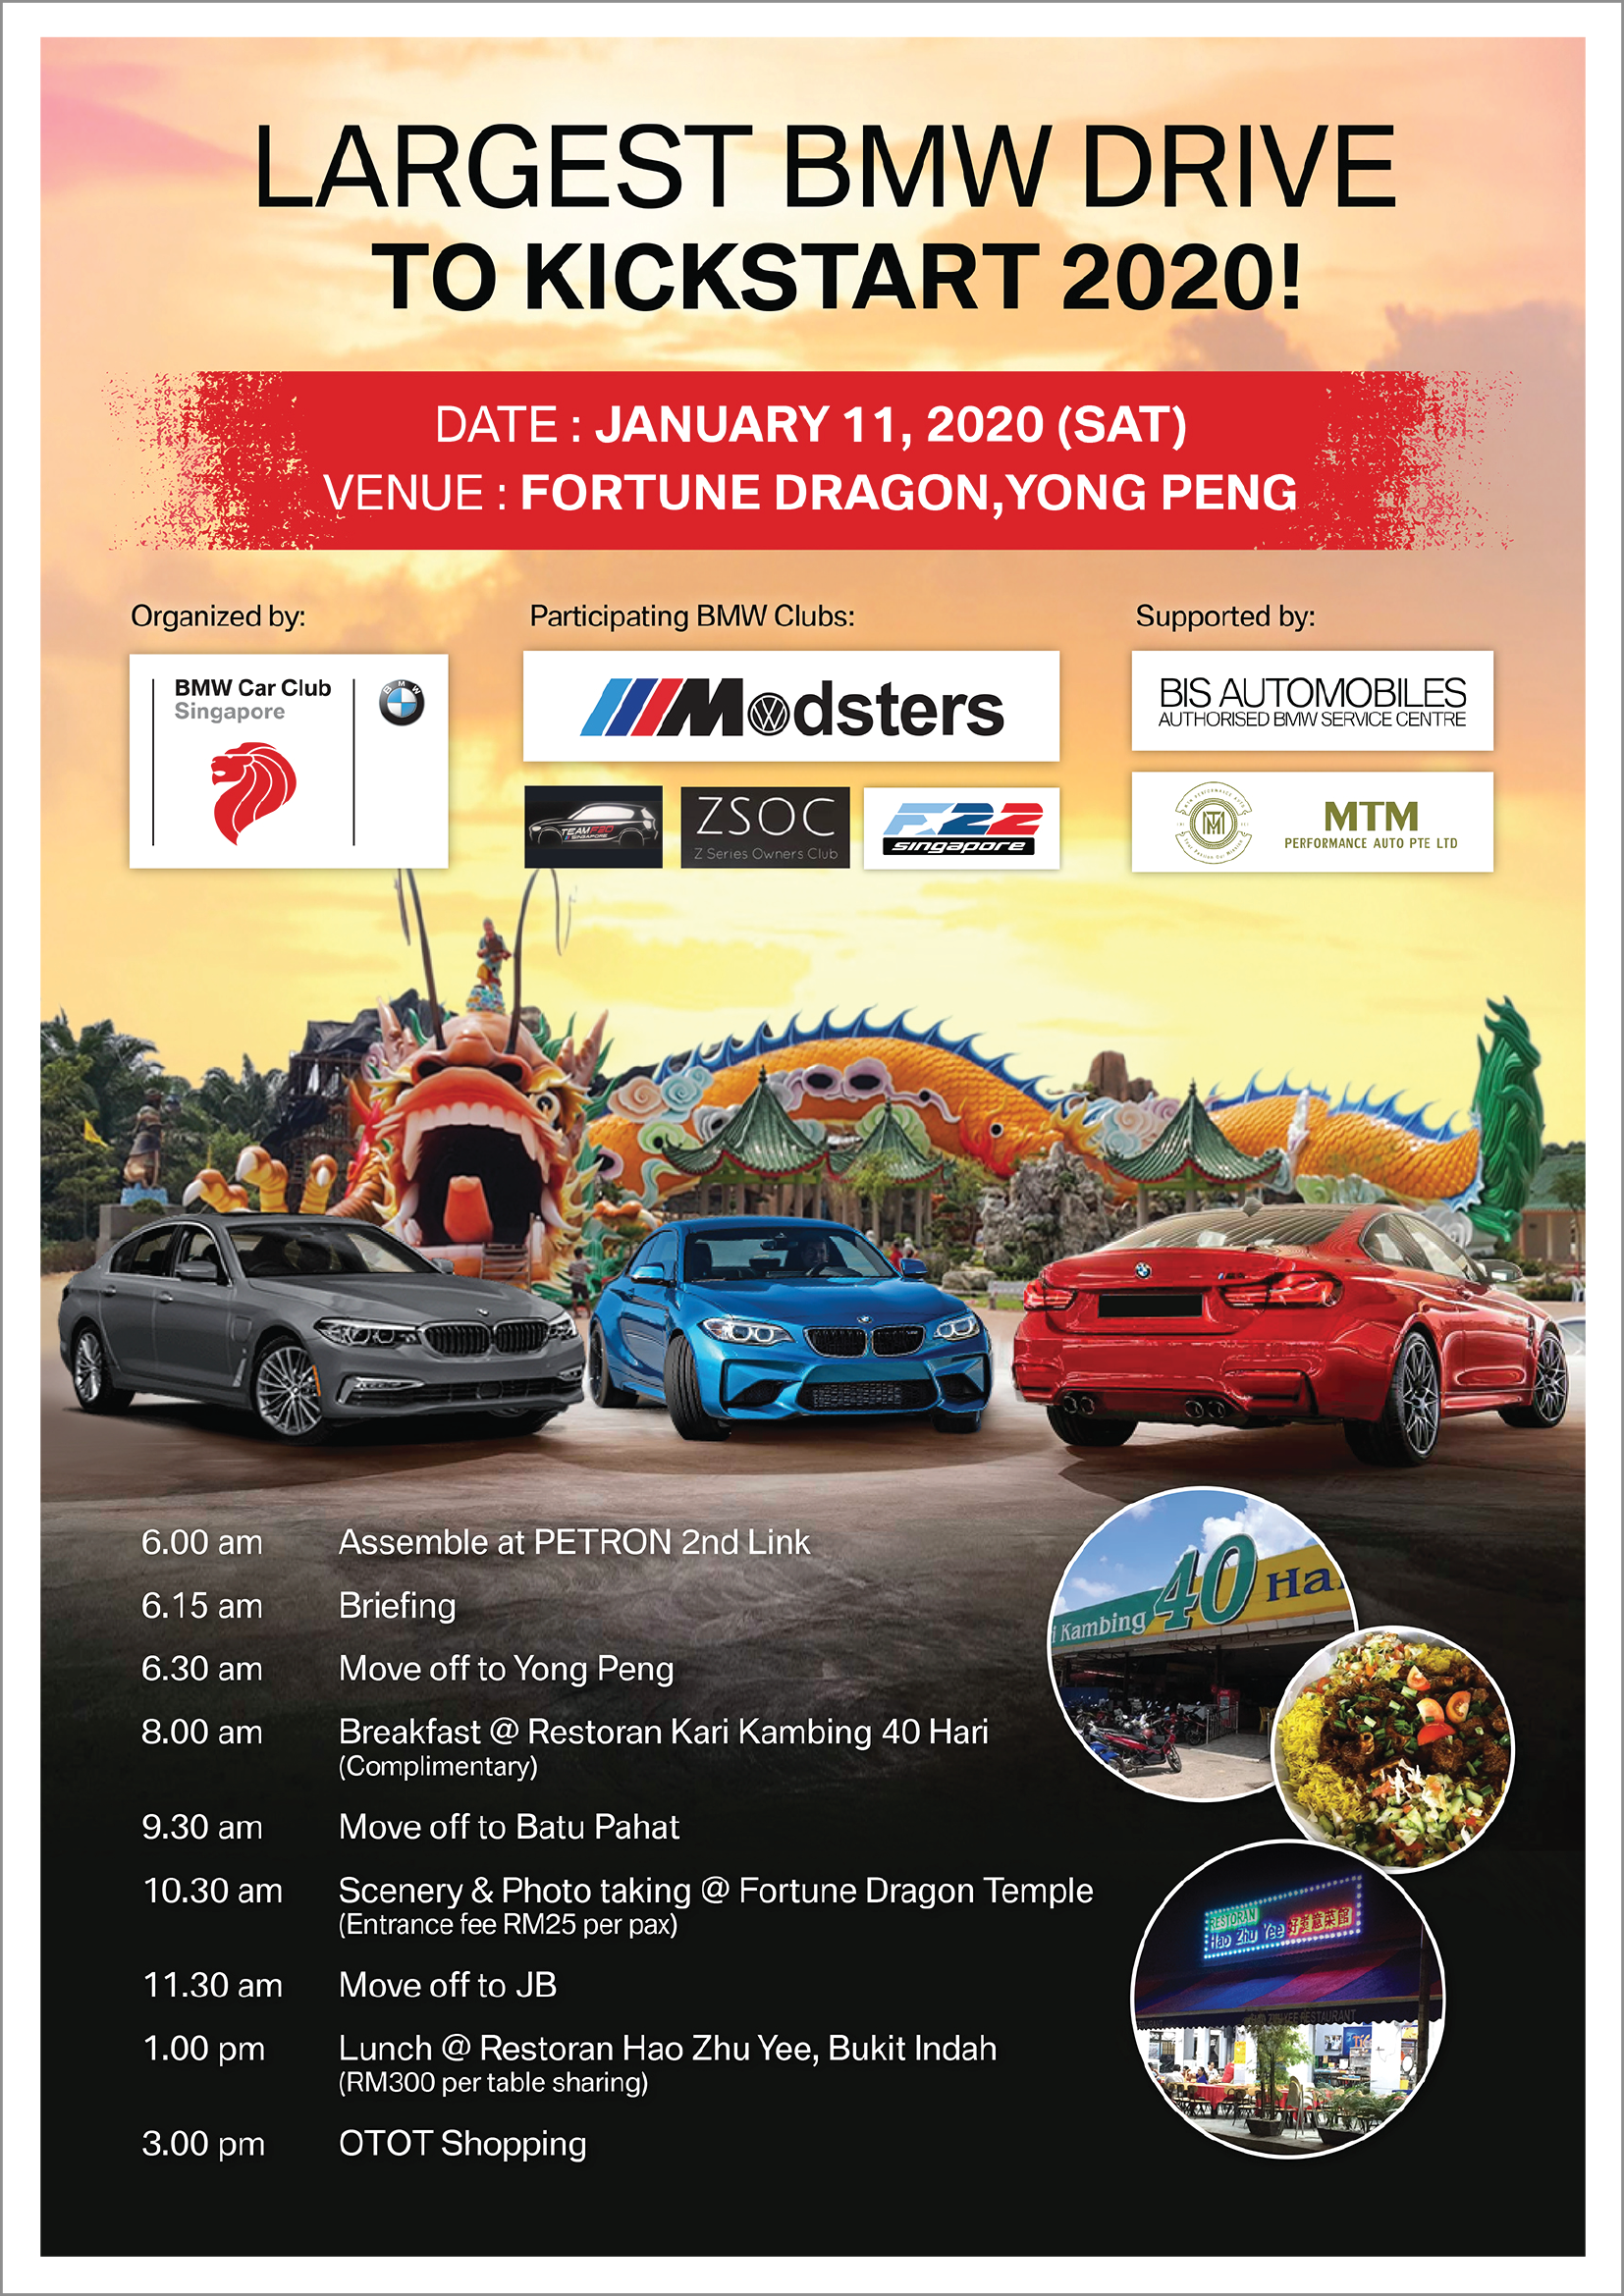 //bmwcarclub.sg/wp-content/uploads/2020/01/Largest-BMW-Drive-2020-Poster-5.png